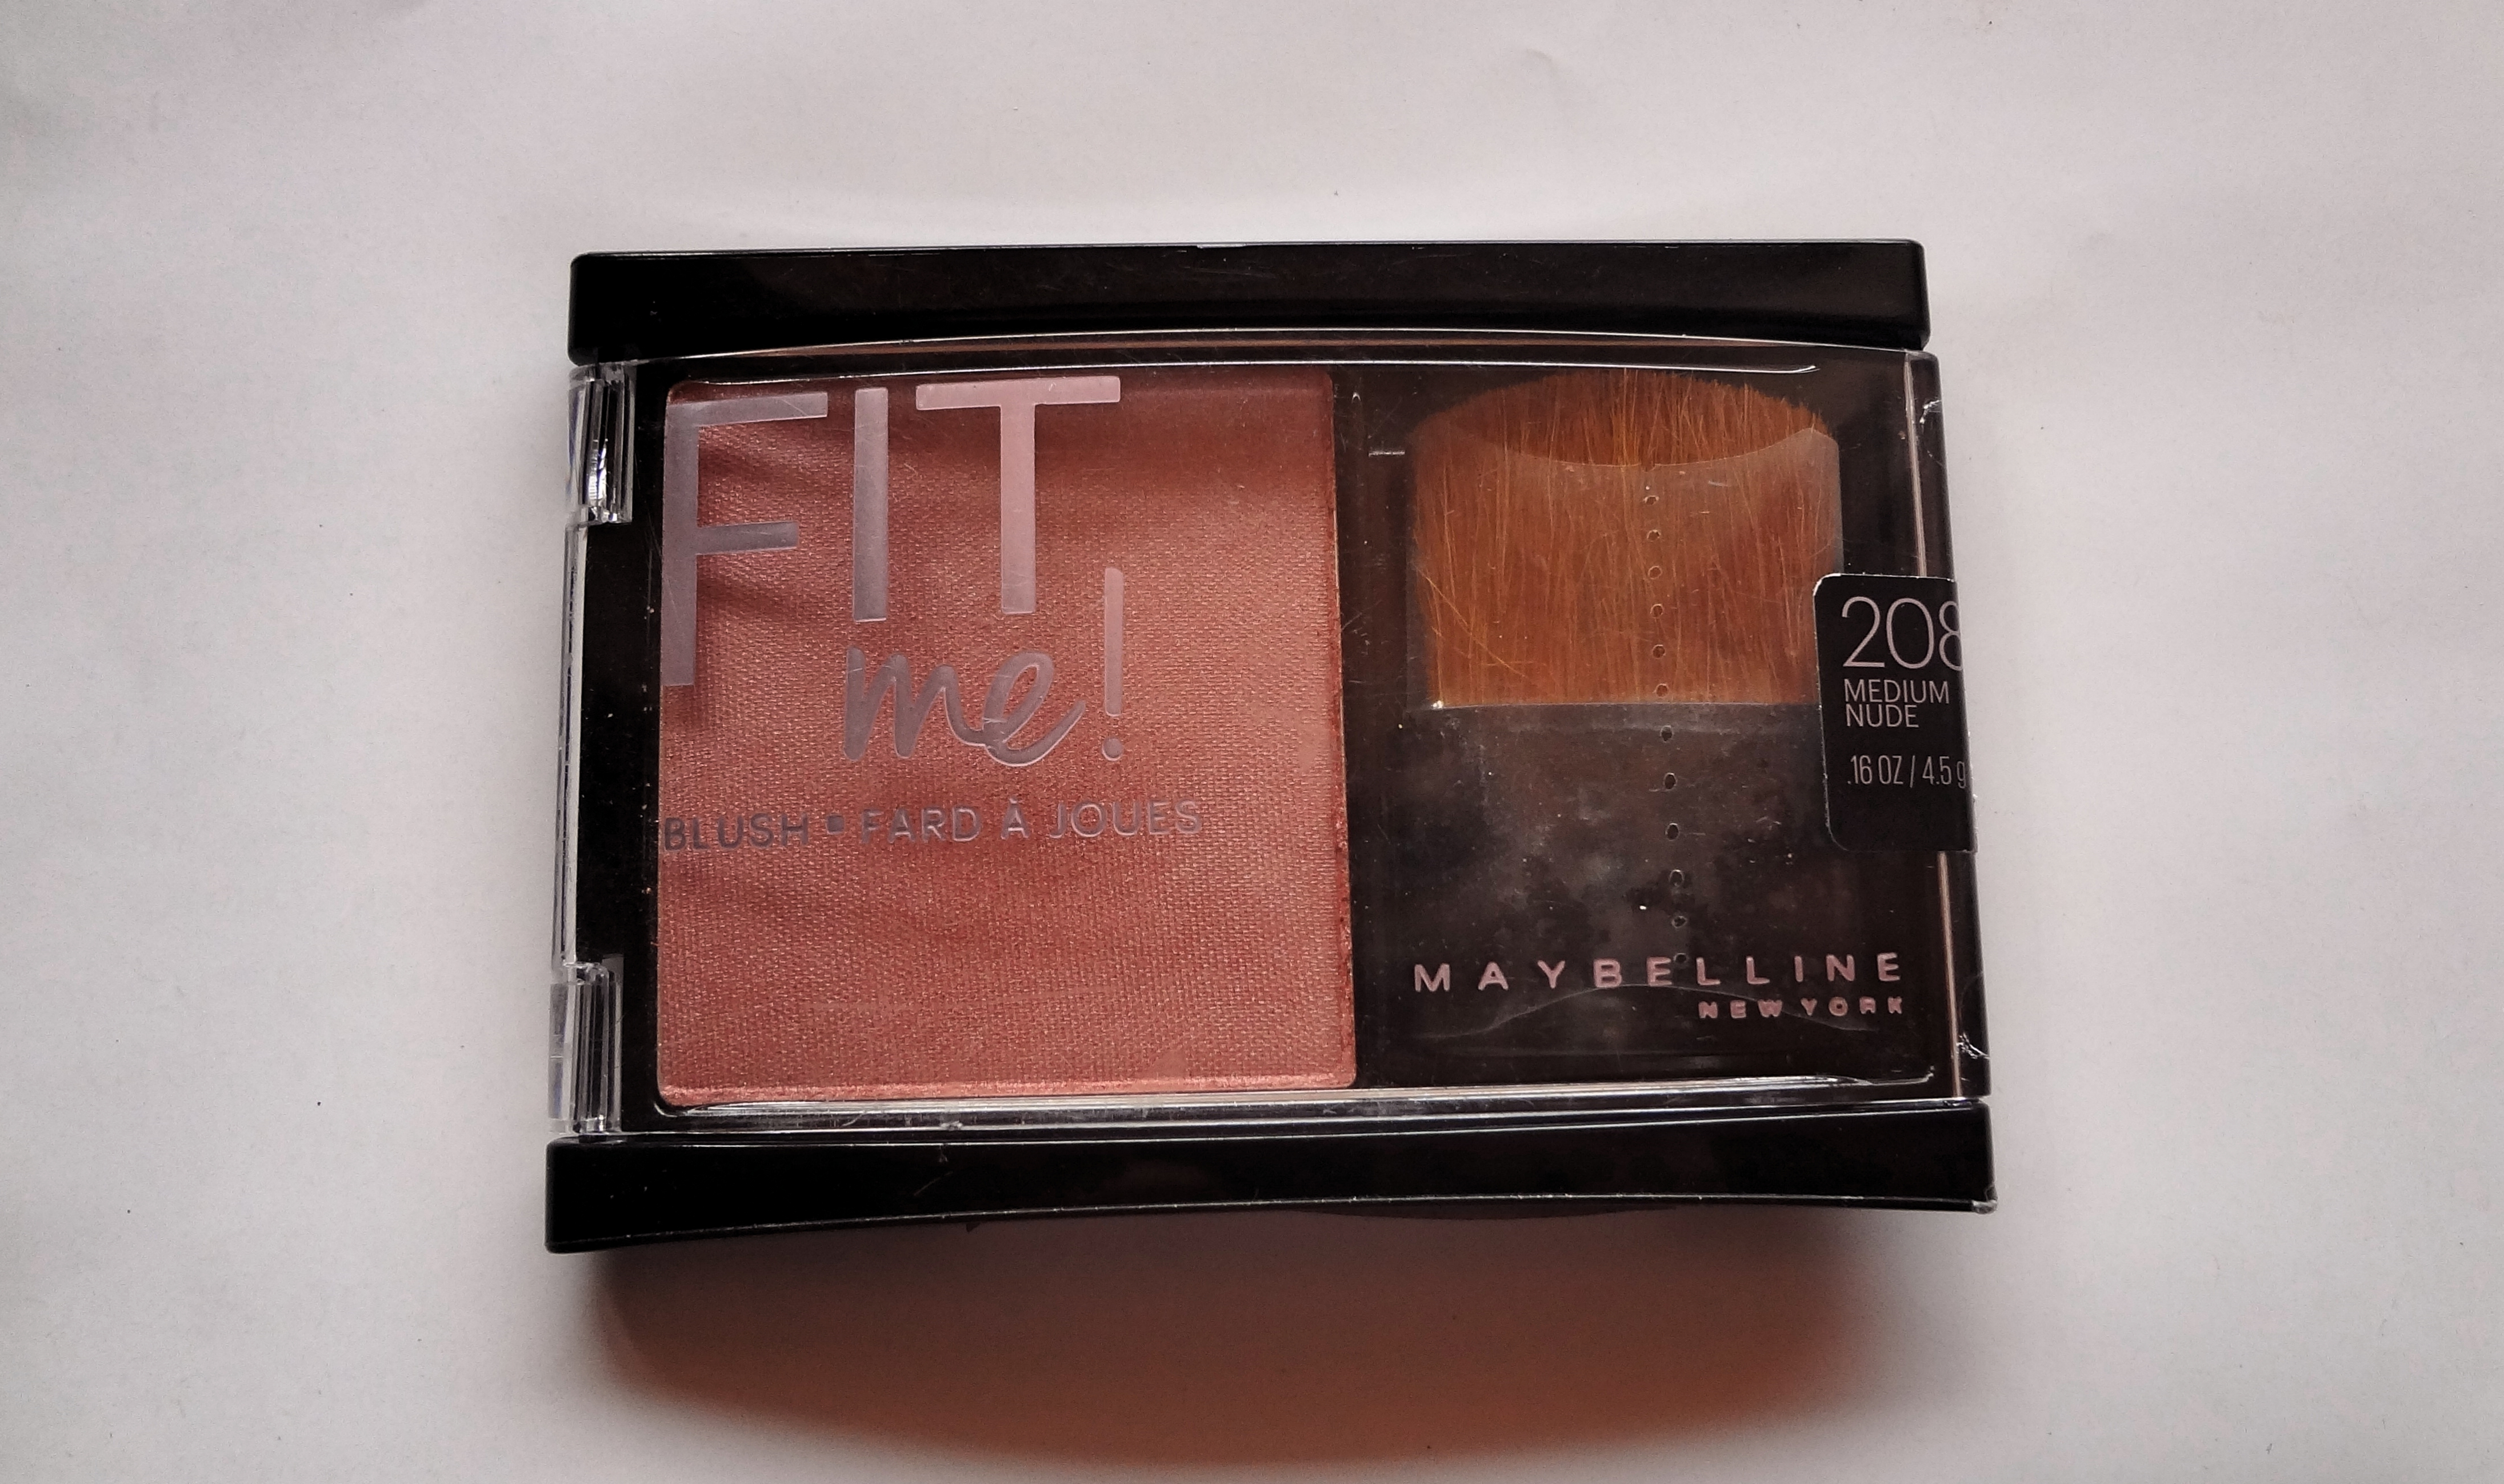 So today I am reviewing the Maybelline Fit Me! blush in the shade 208 Medium Nude.